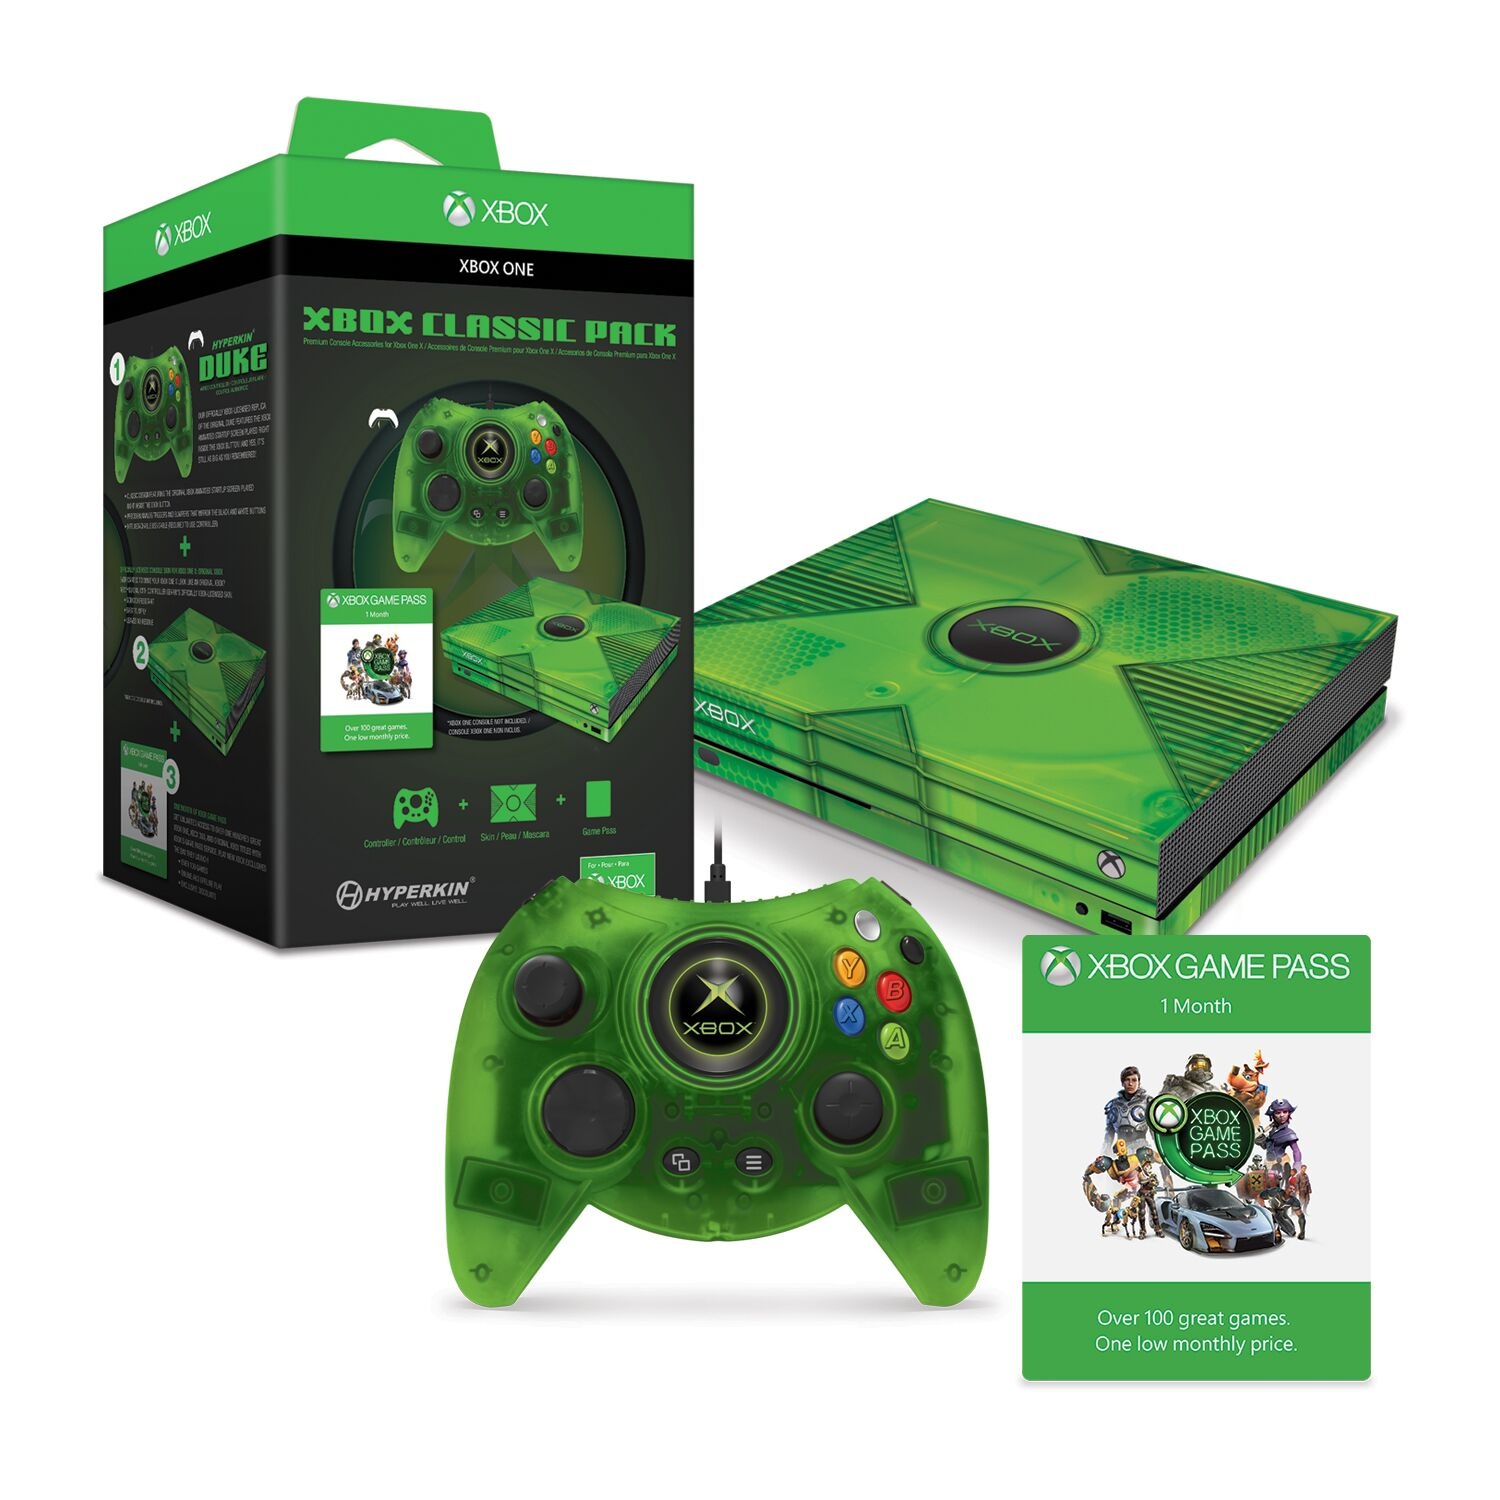 HYPERKIN M07374 XBOX CLASSIC PACK FOR XBOX ONE X COLLECTORS